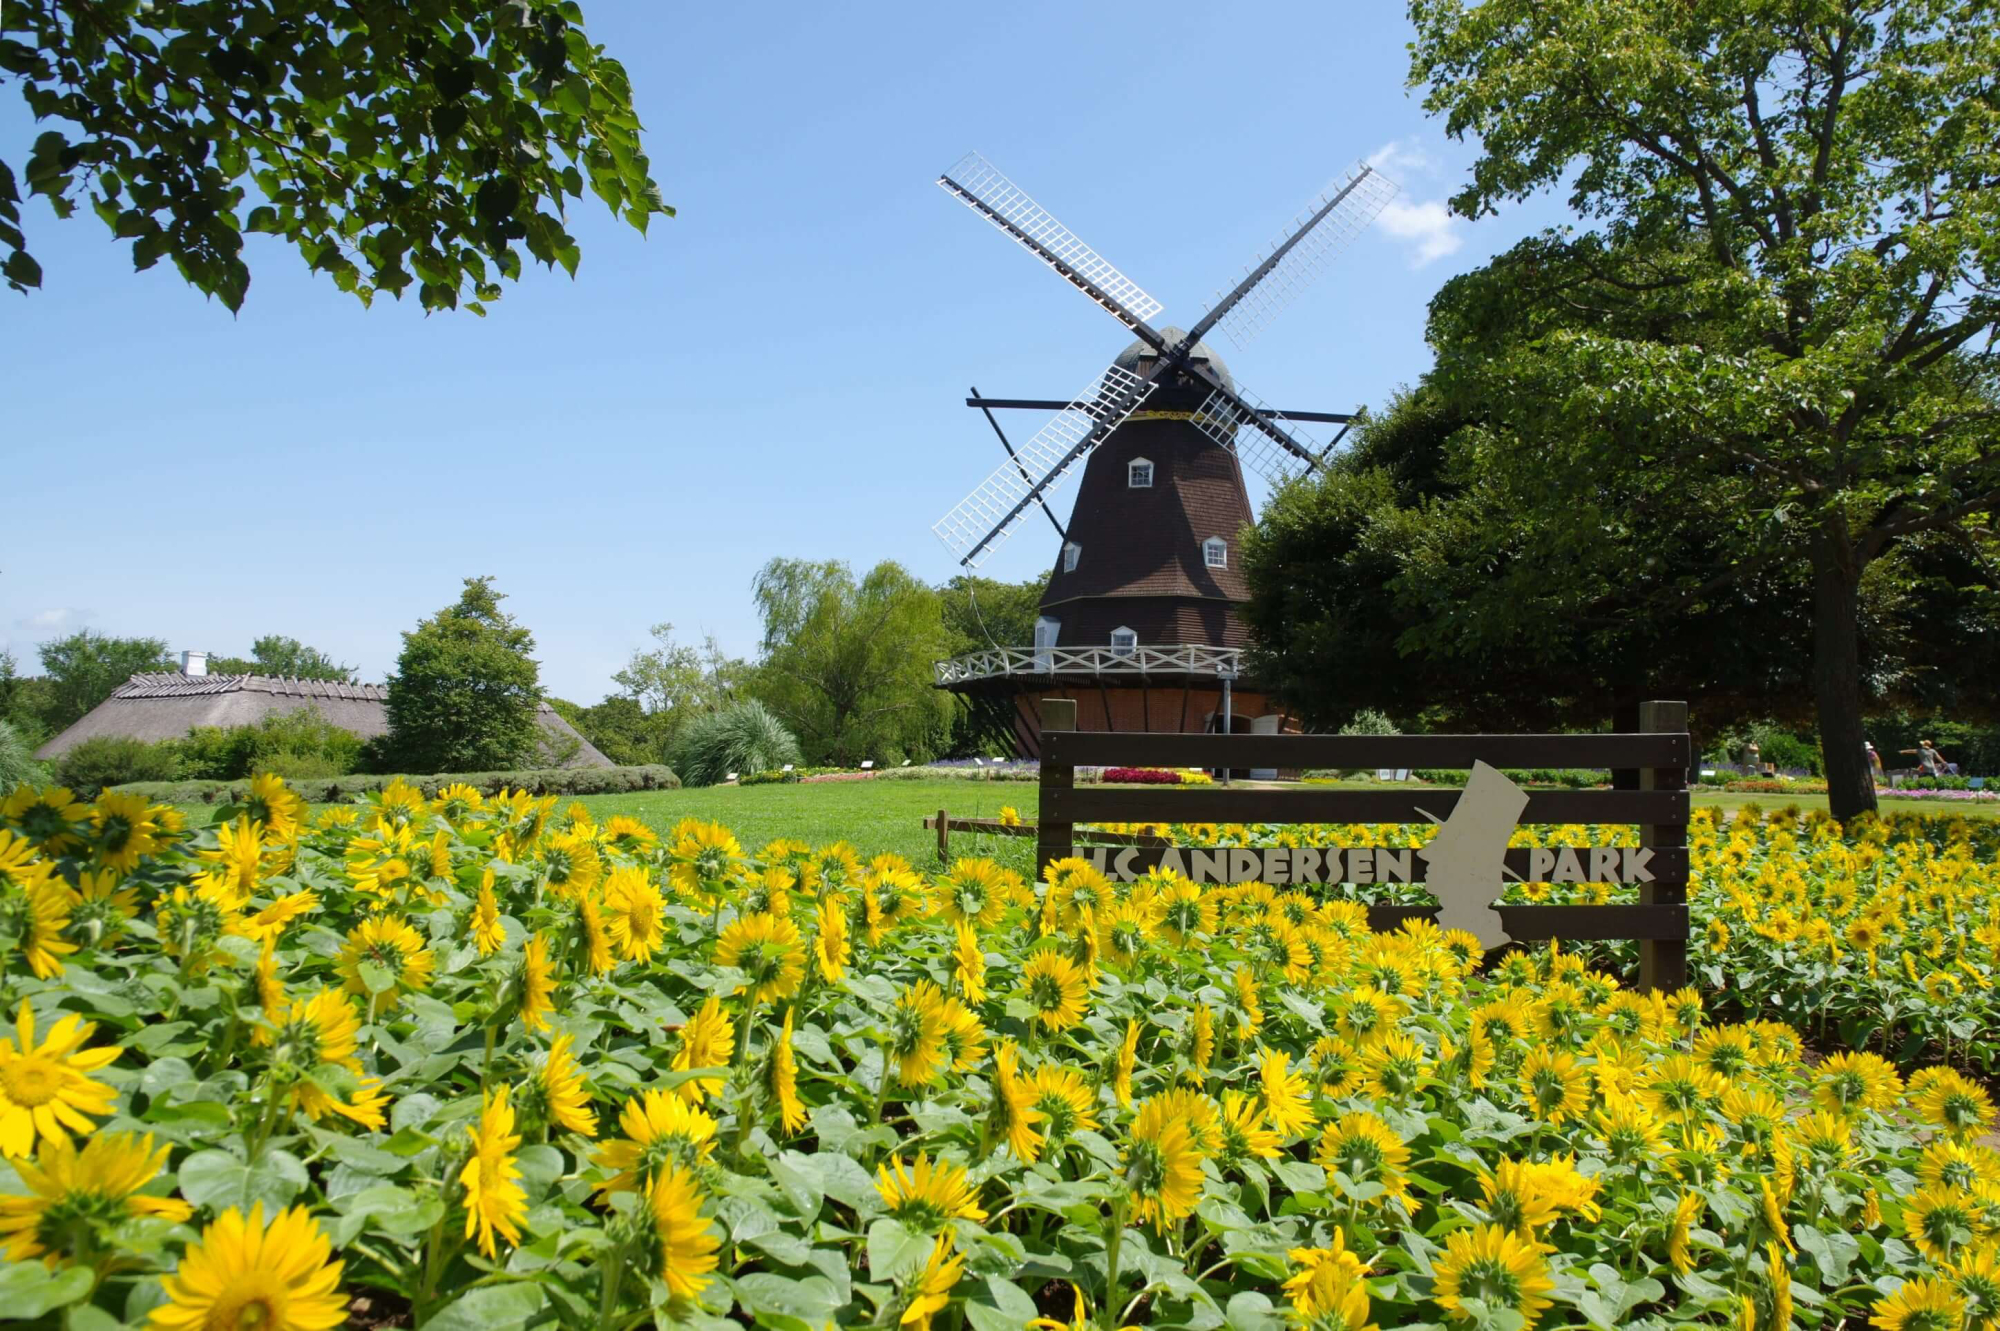 A full-scale windmill is just one of many attractions of H.C. Andersen Park. | COURTESY OF H.C. ANDERSEN PARK